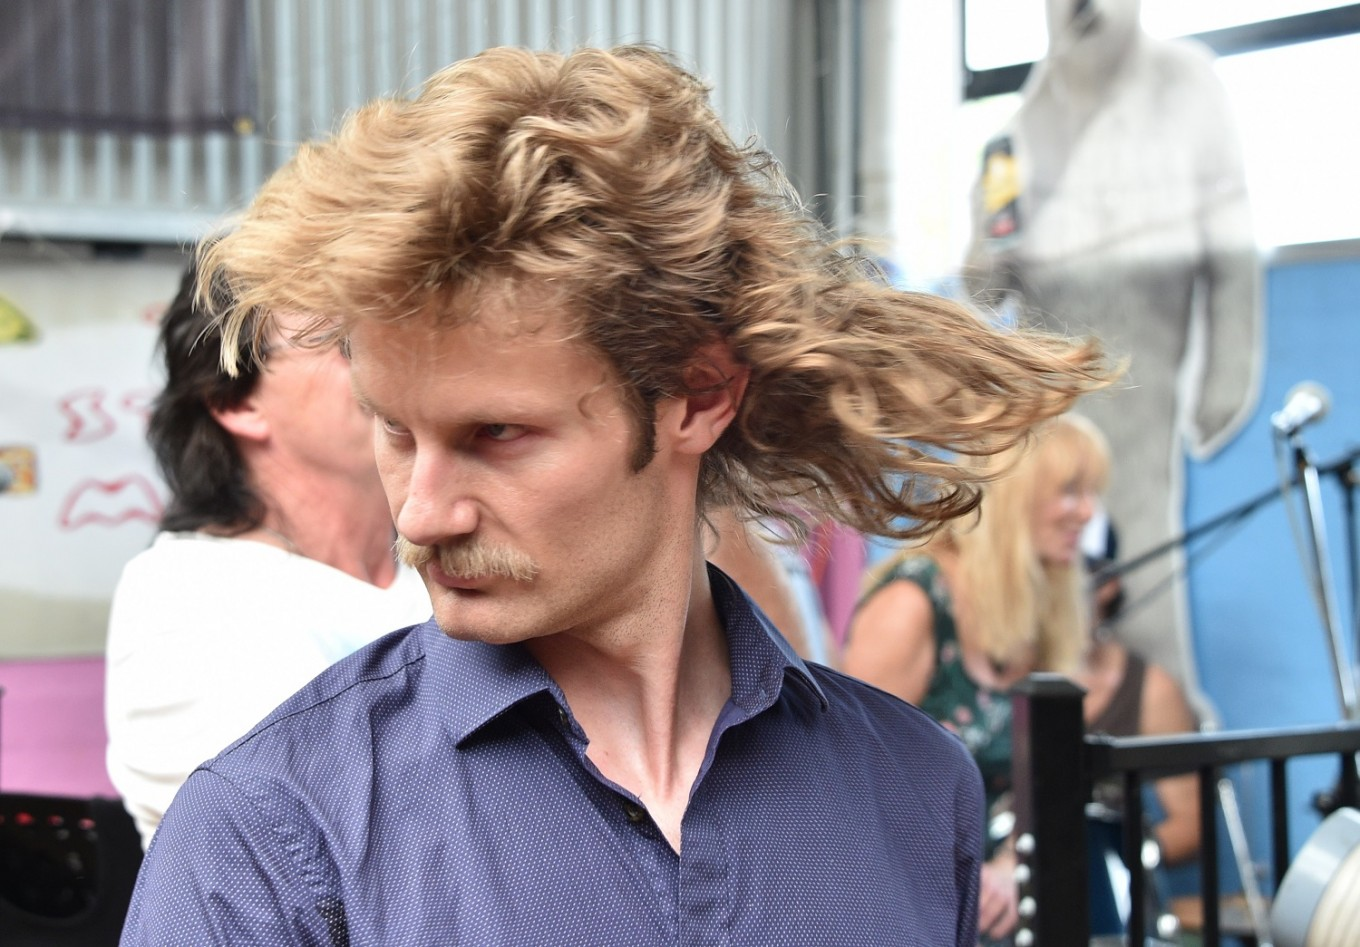 Hair To Stay Australia Mullet Heads Celebrate Hairstyle Revival